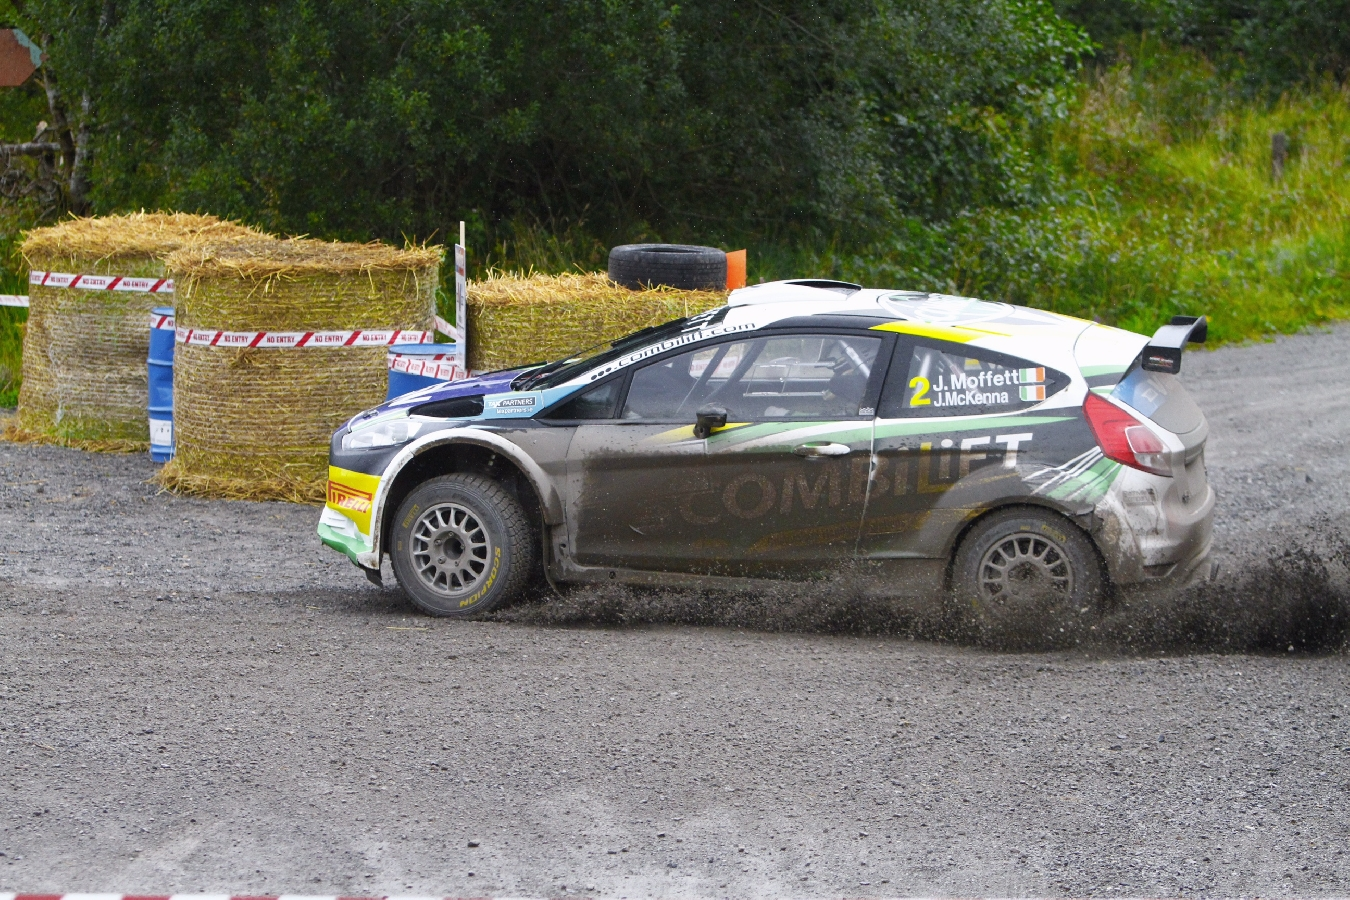 Moffett's Family Tie on Lakeland Stages Rally! Valvoline Motorsport Ireland National Forest Championship Round Five